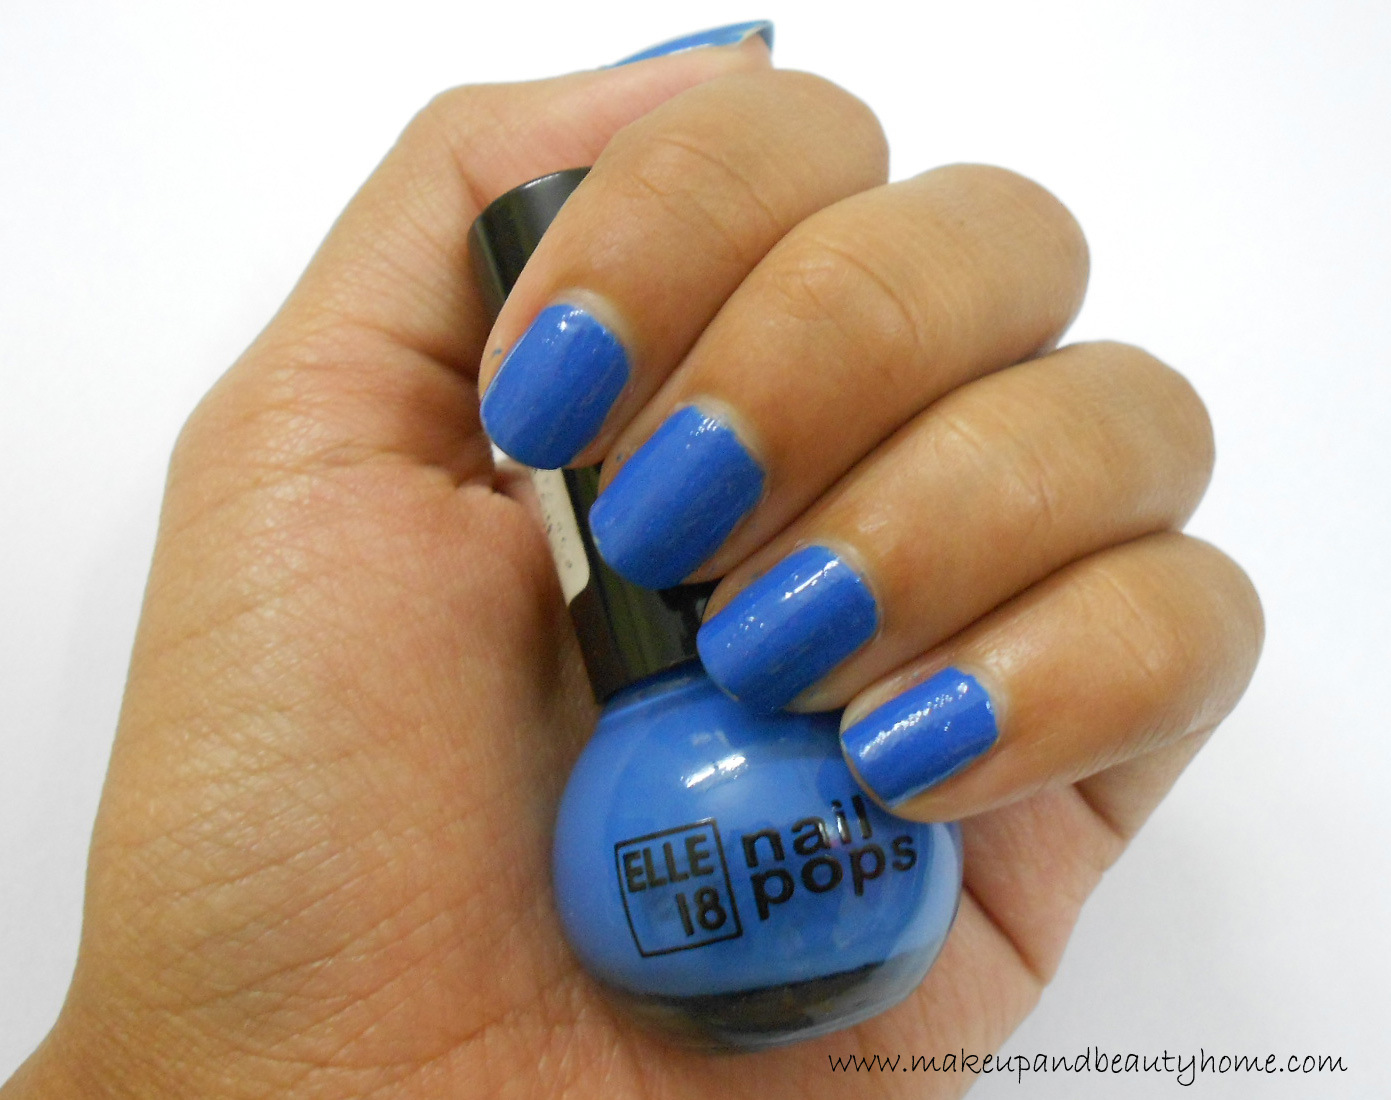 Elle 18 Nail Pops Nail Enamel Shade 65 Review, Photos, NOTD - Makeup ...